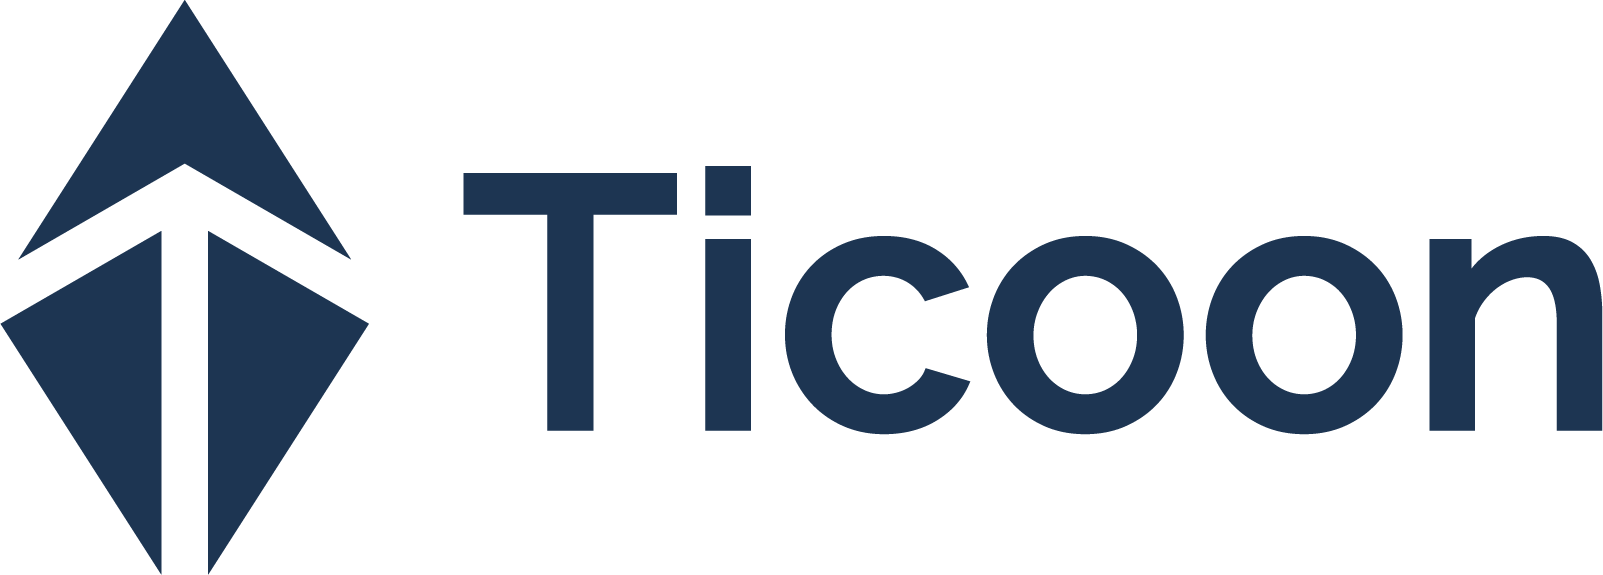 ticoon-blue.png